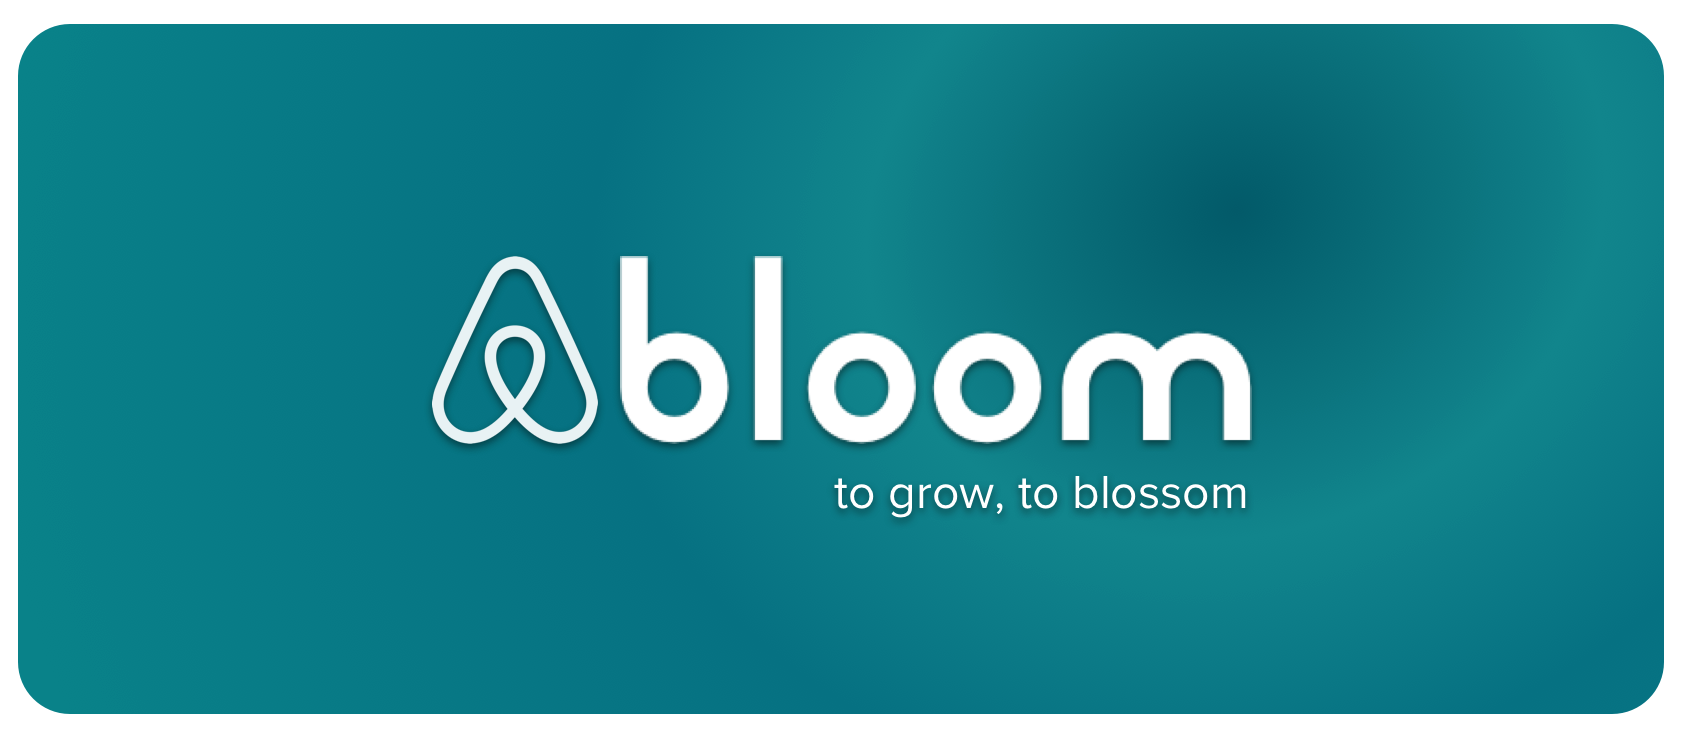 bloom introducing.png